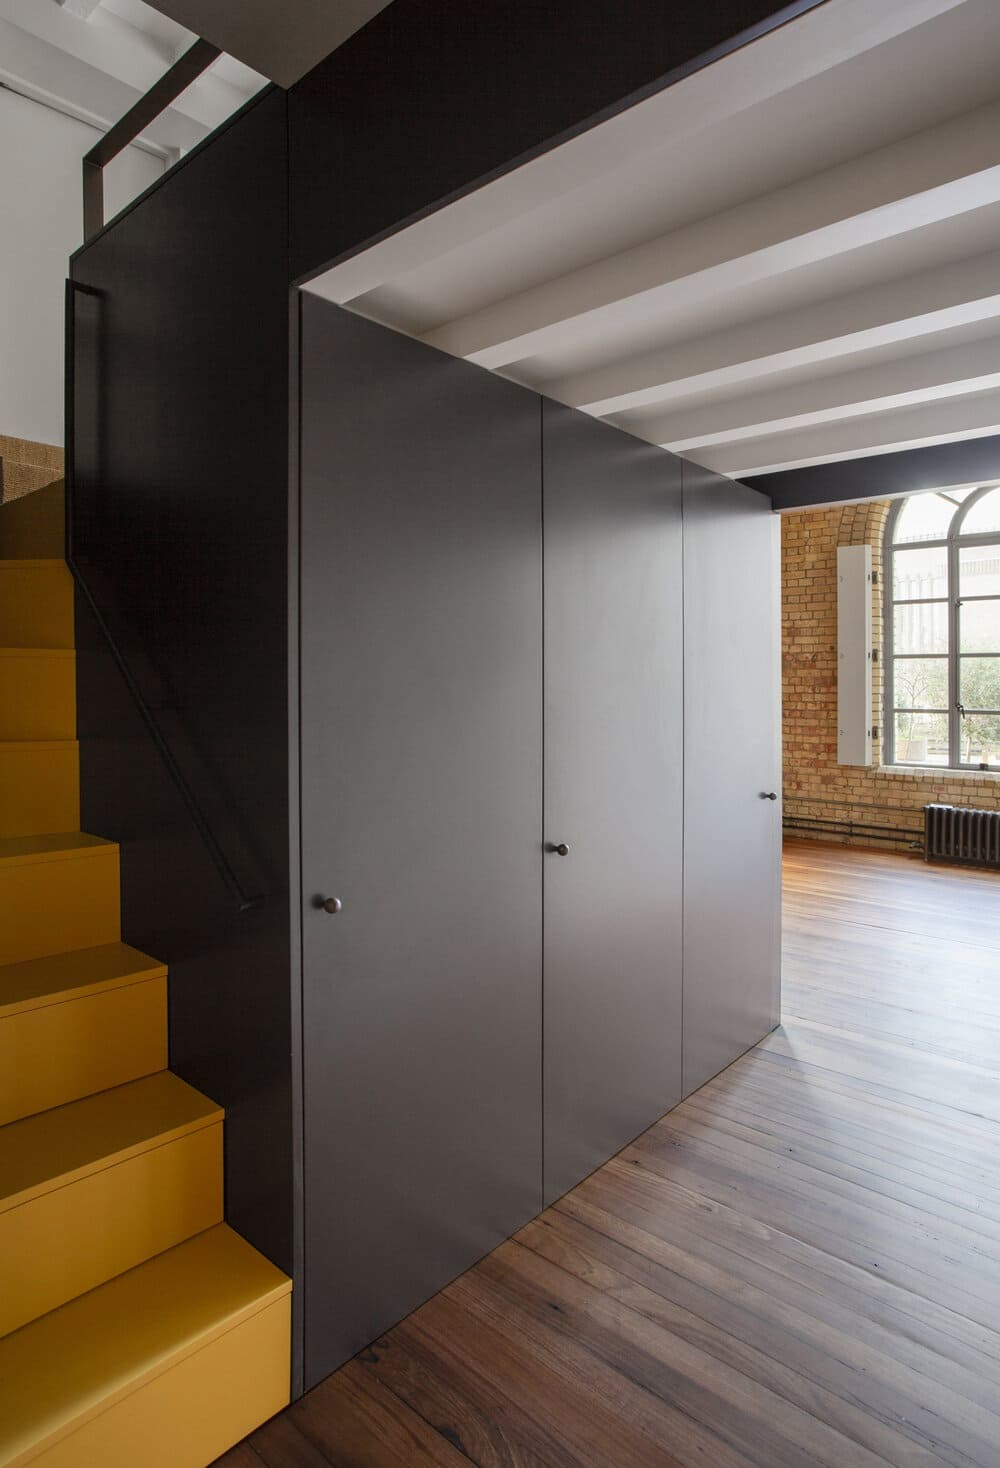 The yellow stairs lead to the apartment's upper level